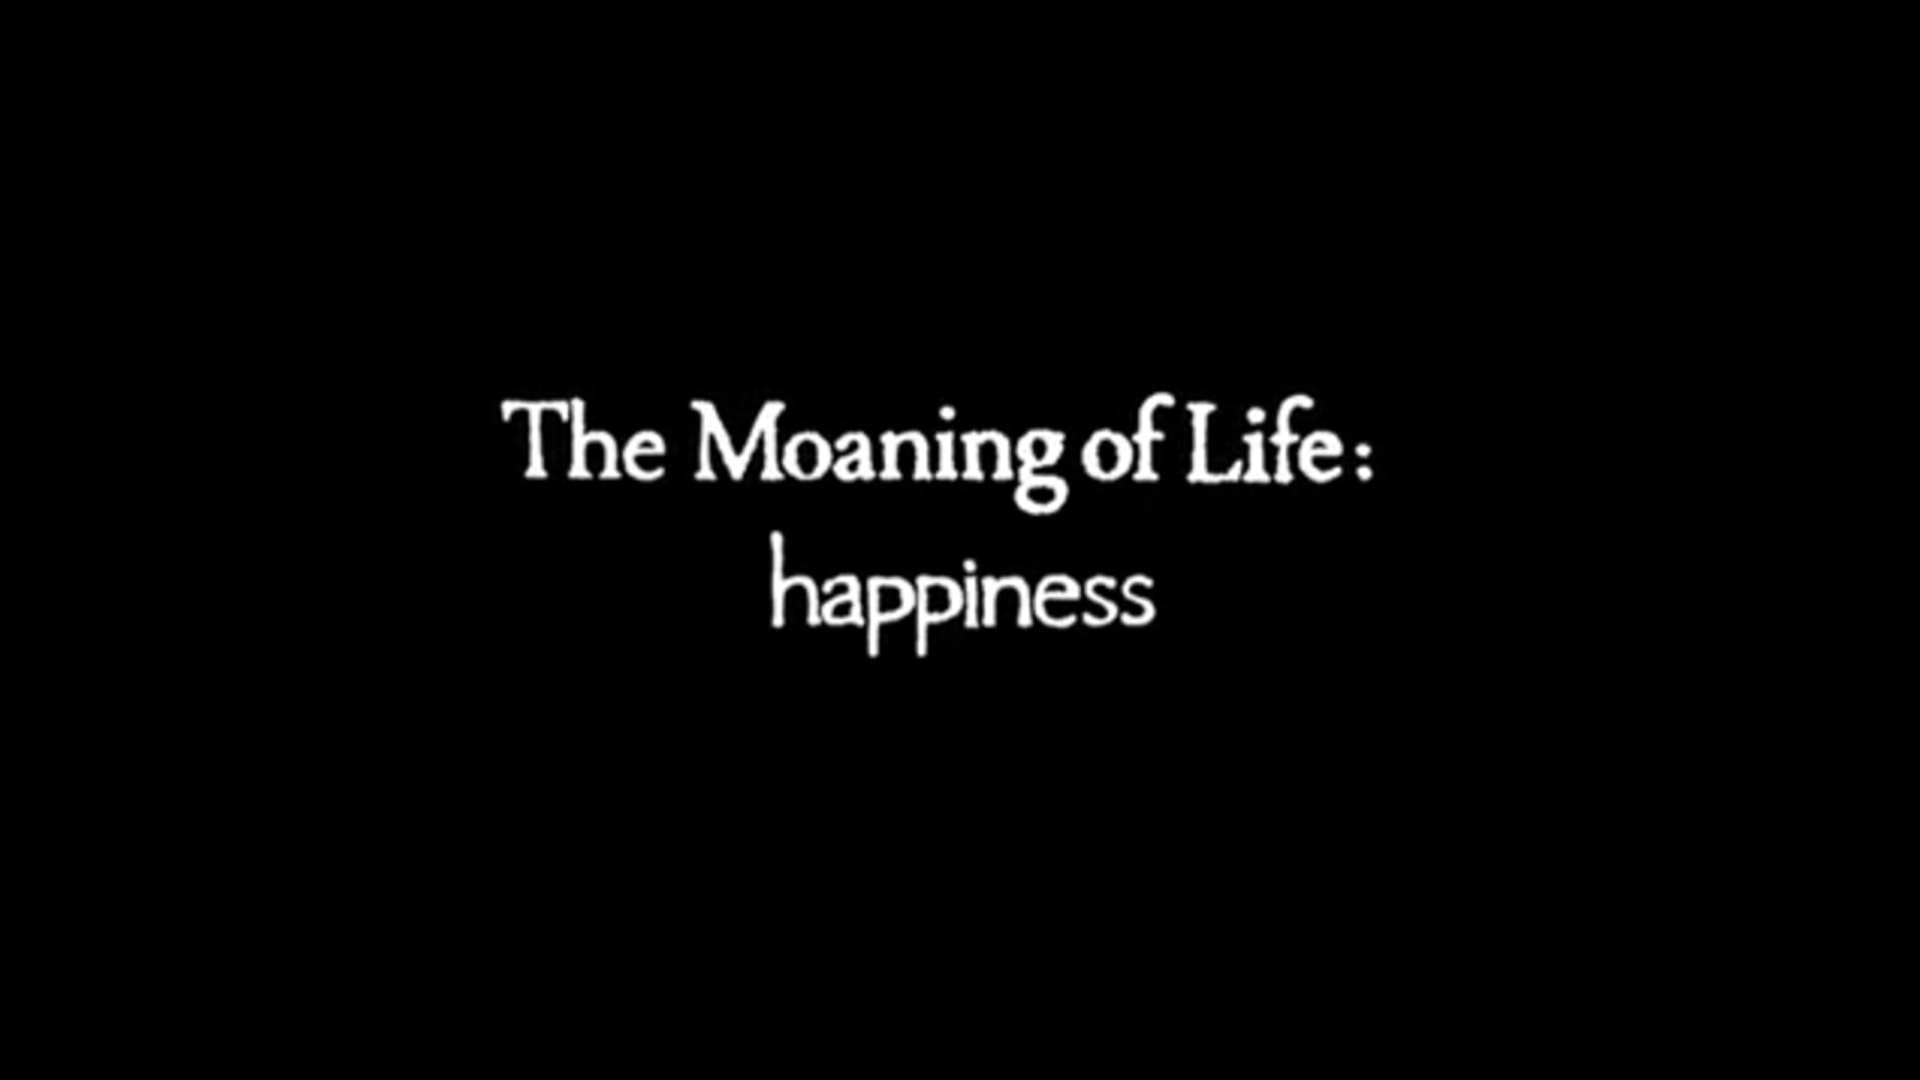 THE MOANING OF LIFE - SKY ONE